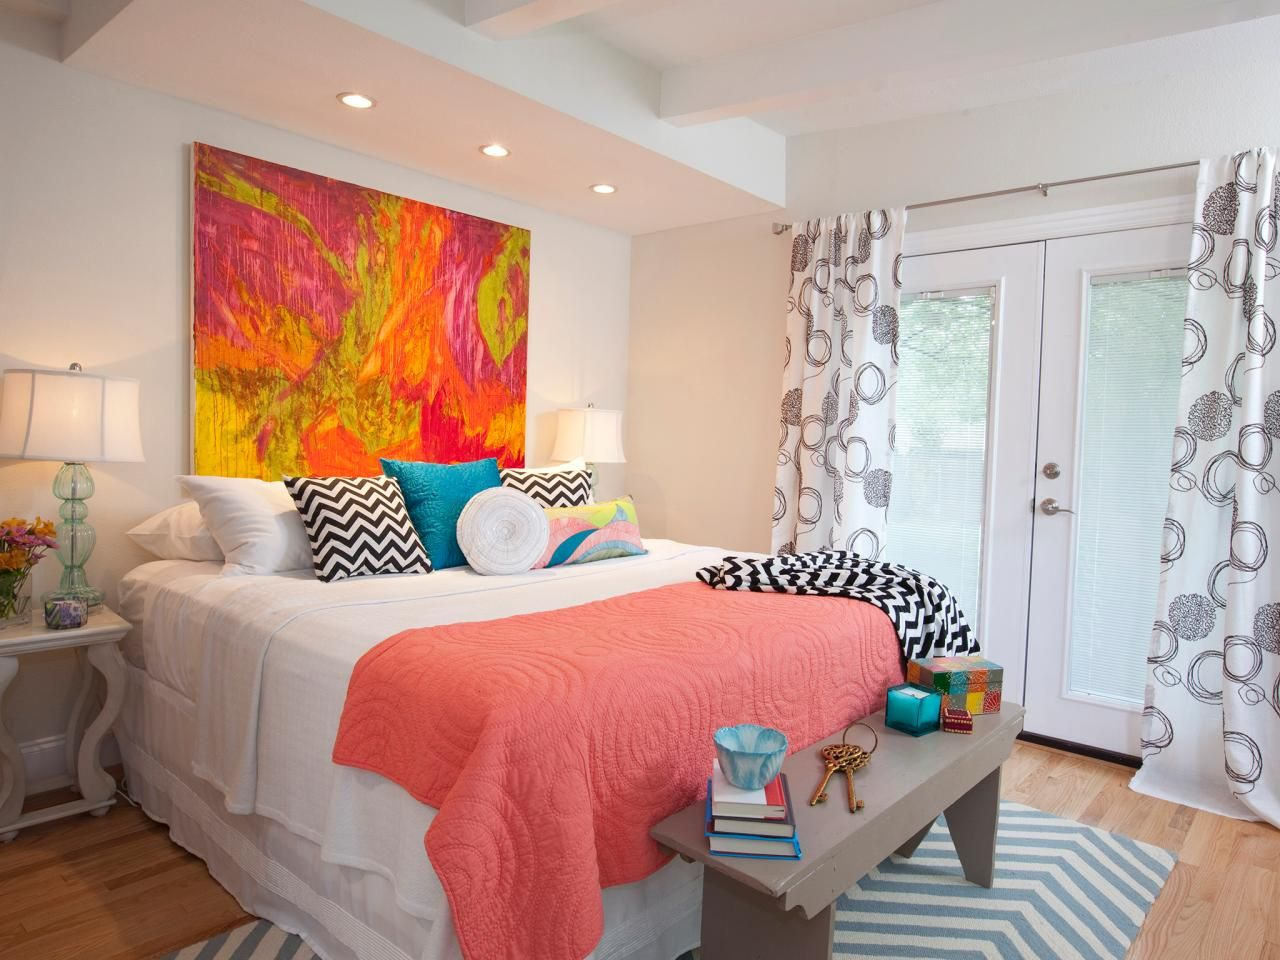 The Bold, Colorful Artwork In This White Master Bedroom Breathes Life Into  The Space.